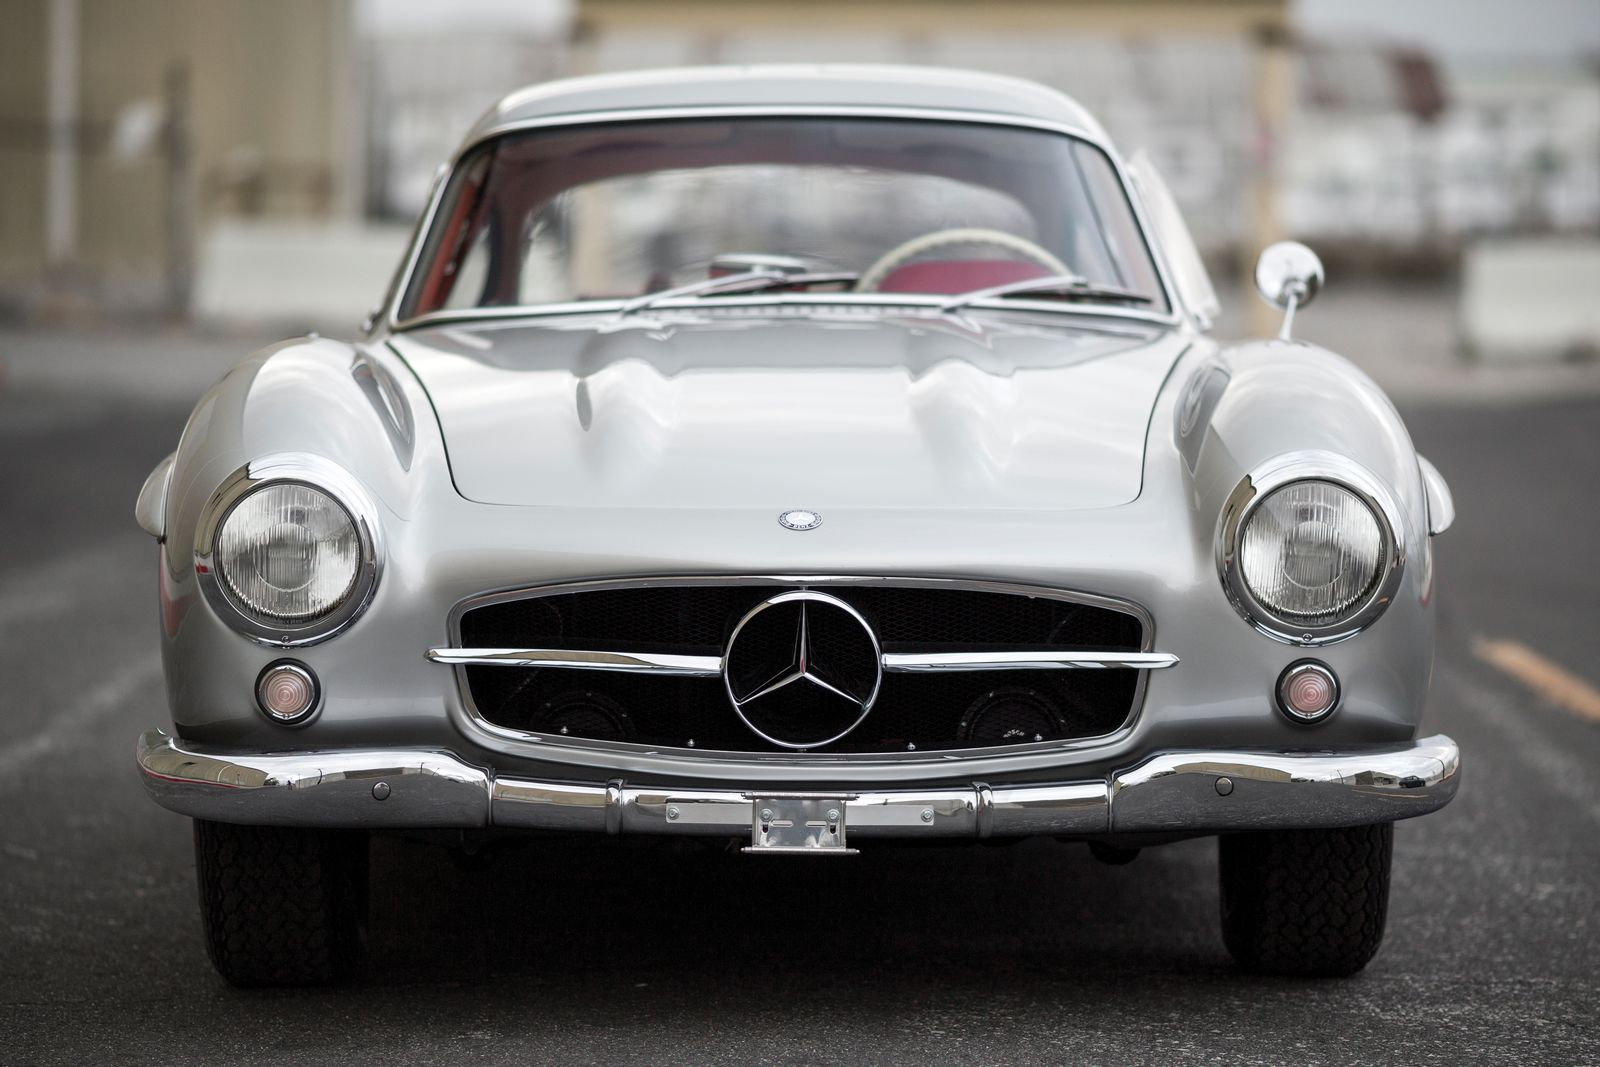 Mercedes-Benz 300SL Alloy Gullwing Heads To AUCTION! It Will Be Sold For At Least $5.5 M 3